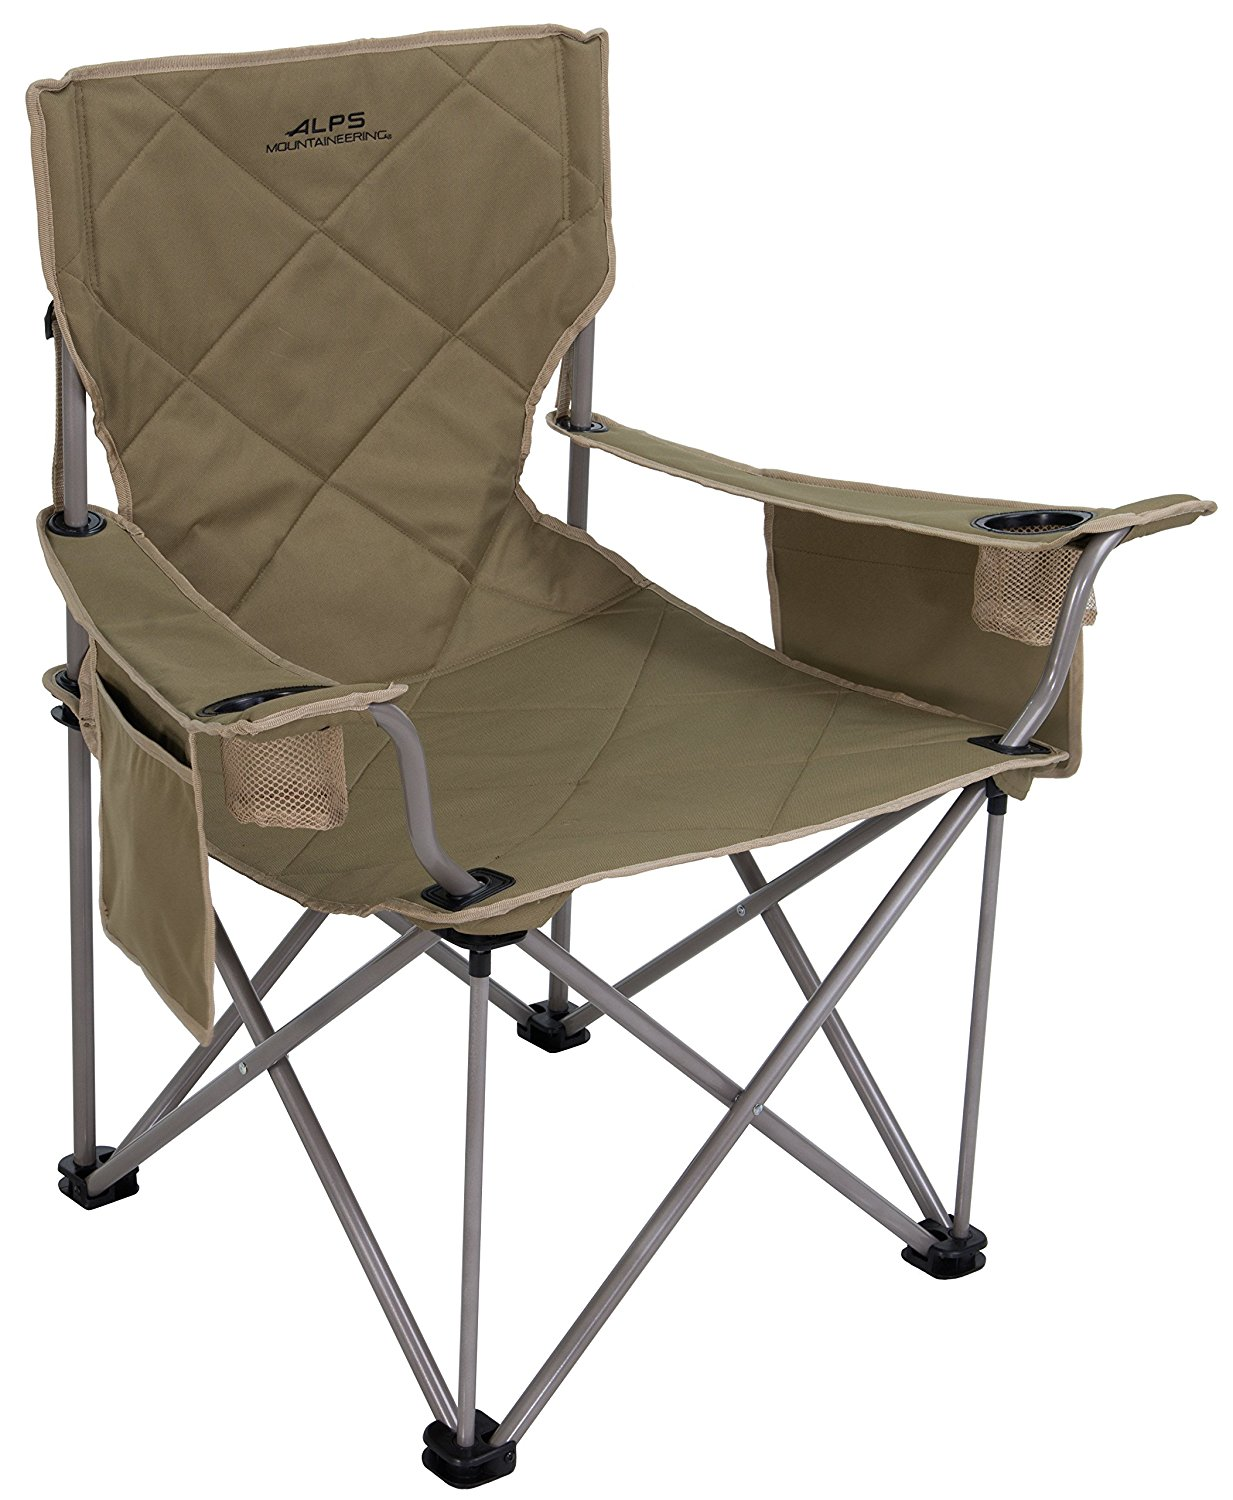 Cool Most Comfortable Heavy Duty Folding Camping Chairs For Heavy Dailytribune Chair Design For Home Dailytribuneorg